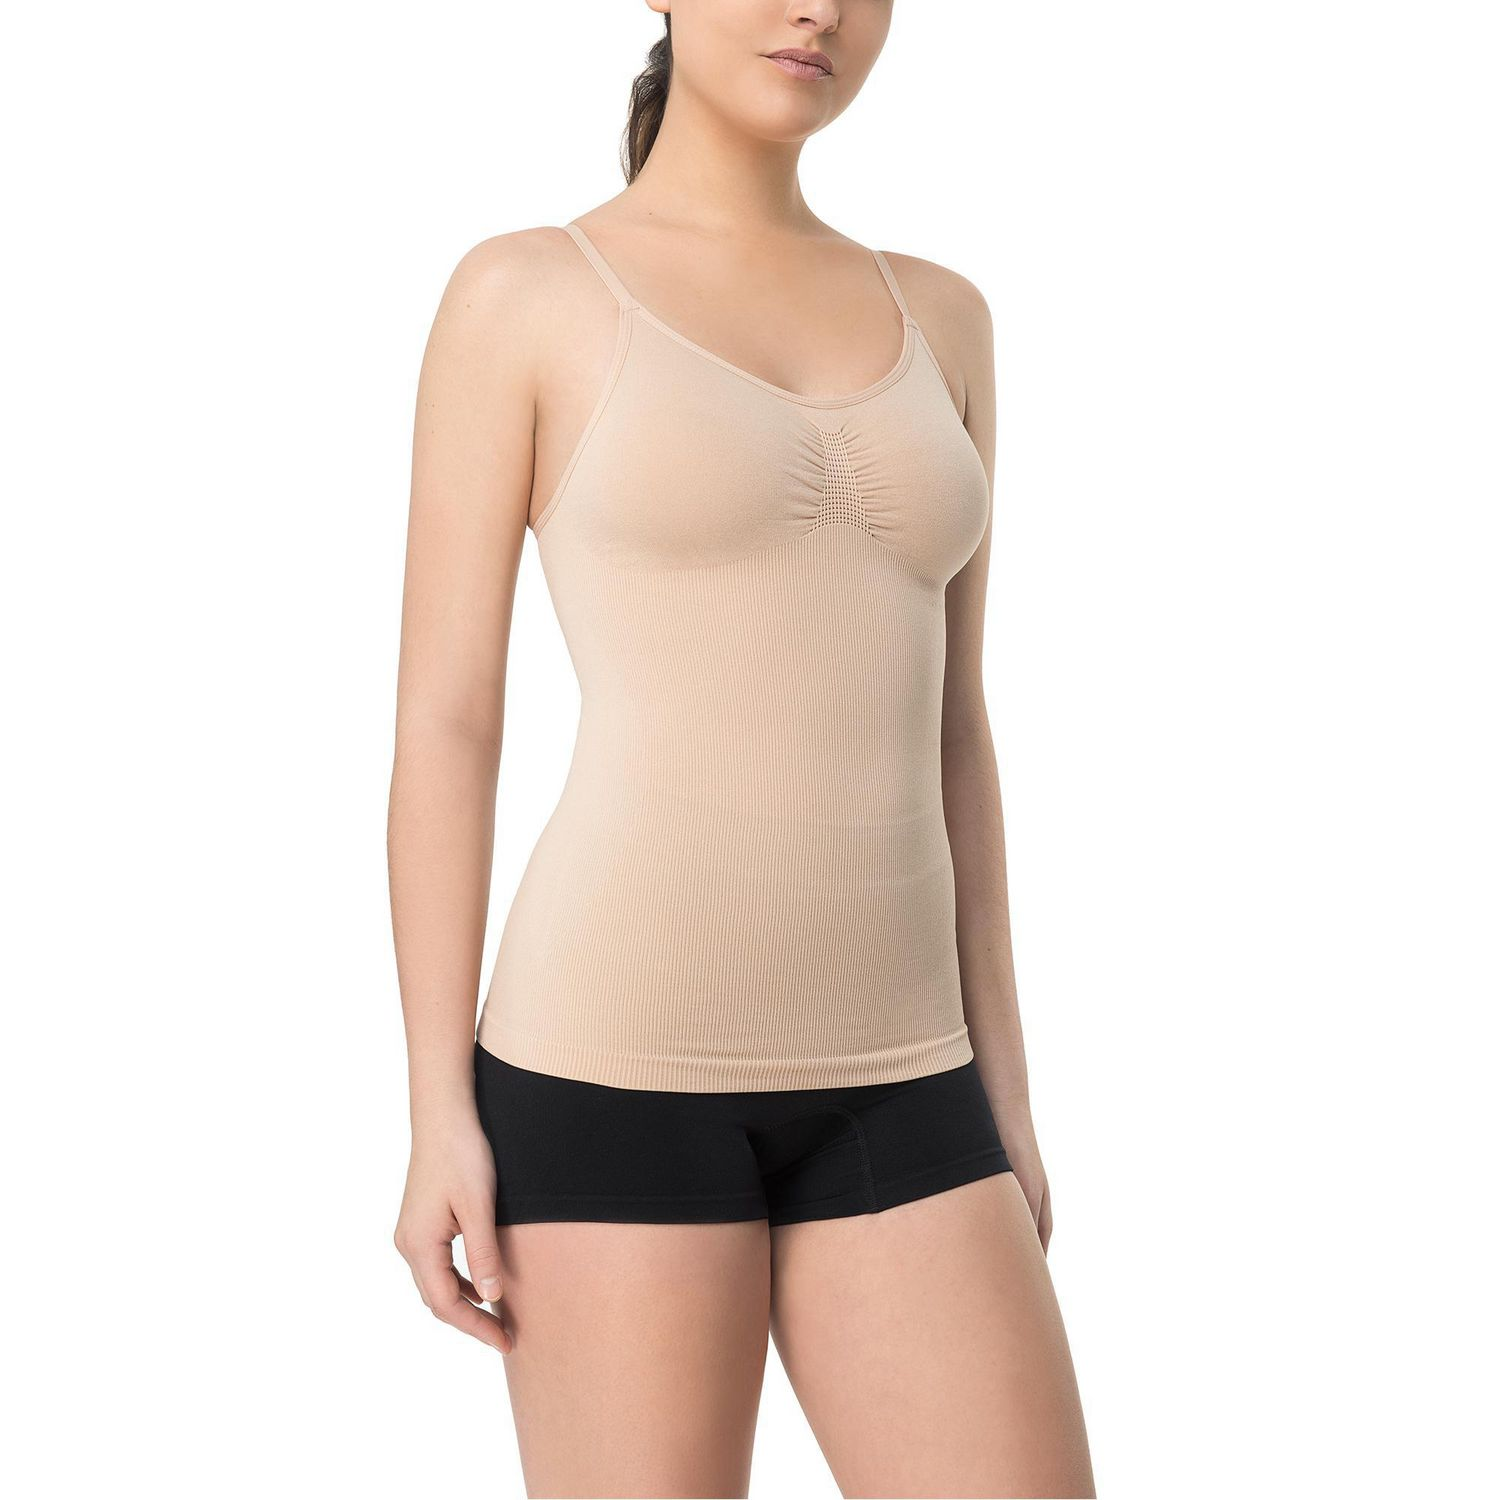 598962422d6bb George Girls  Seamless Tummy Control Camisole - image 1 of 1 zoomed image